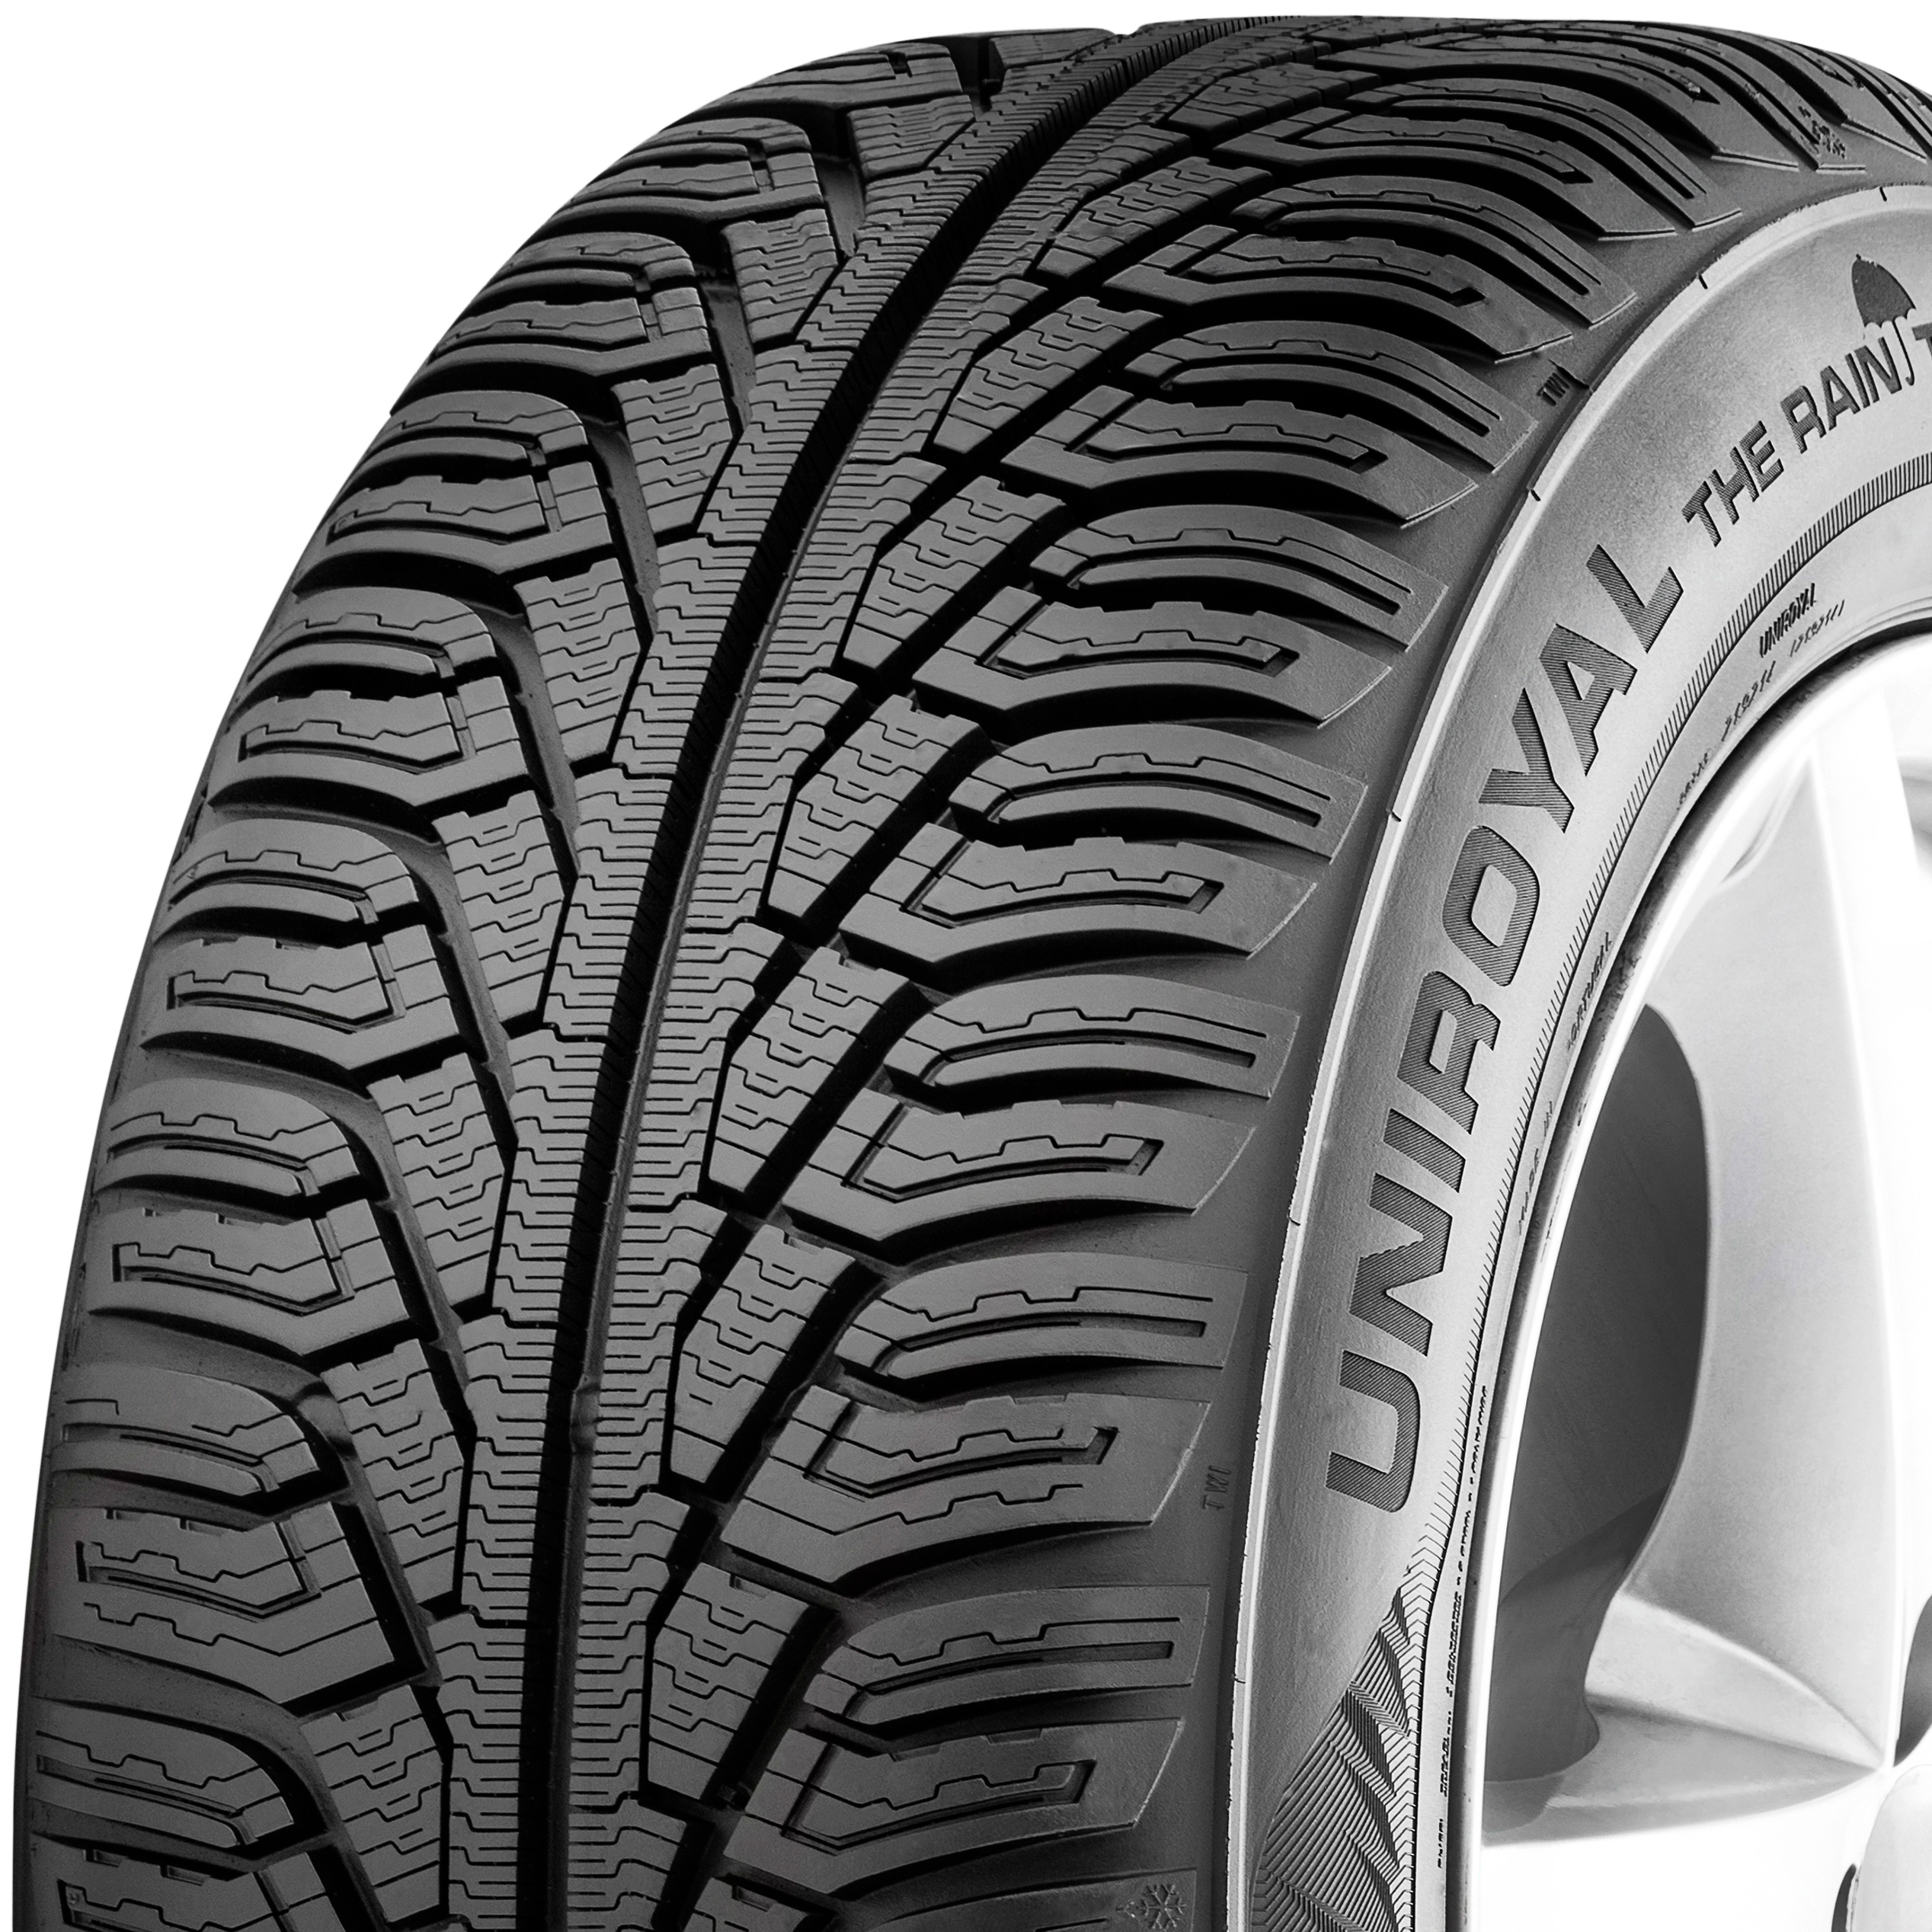 225/55R16 99V, Uniroyal, MS Plus-77